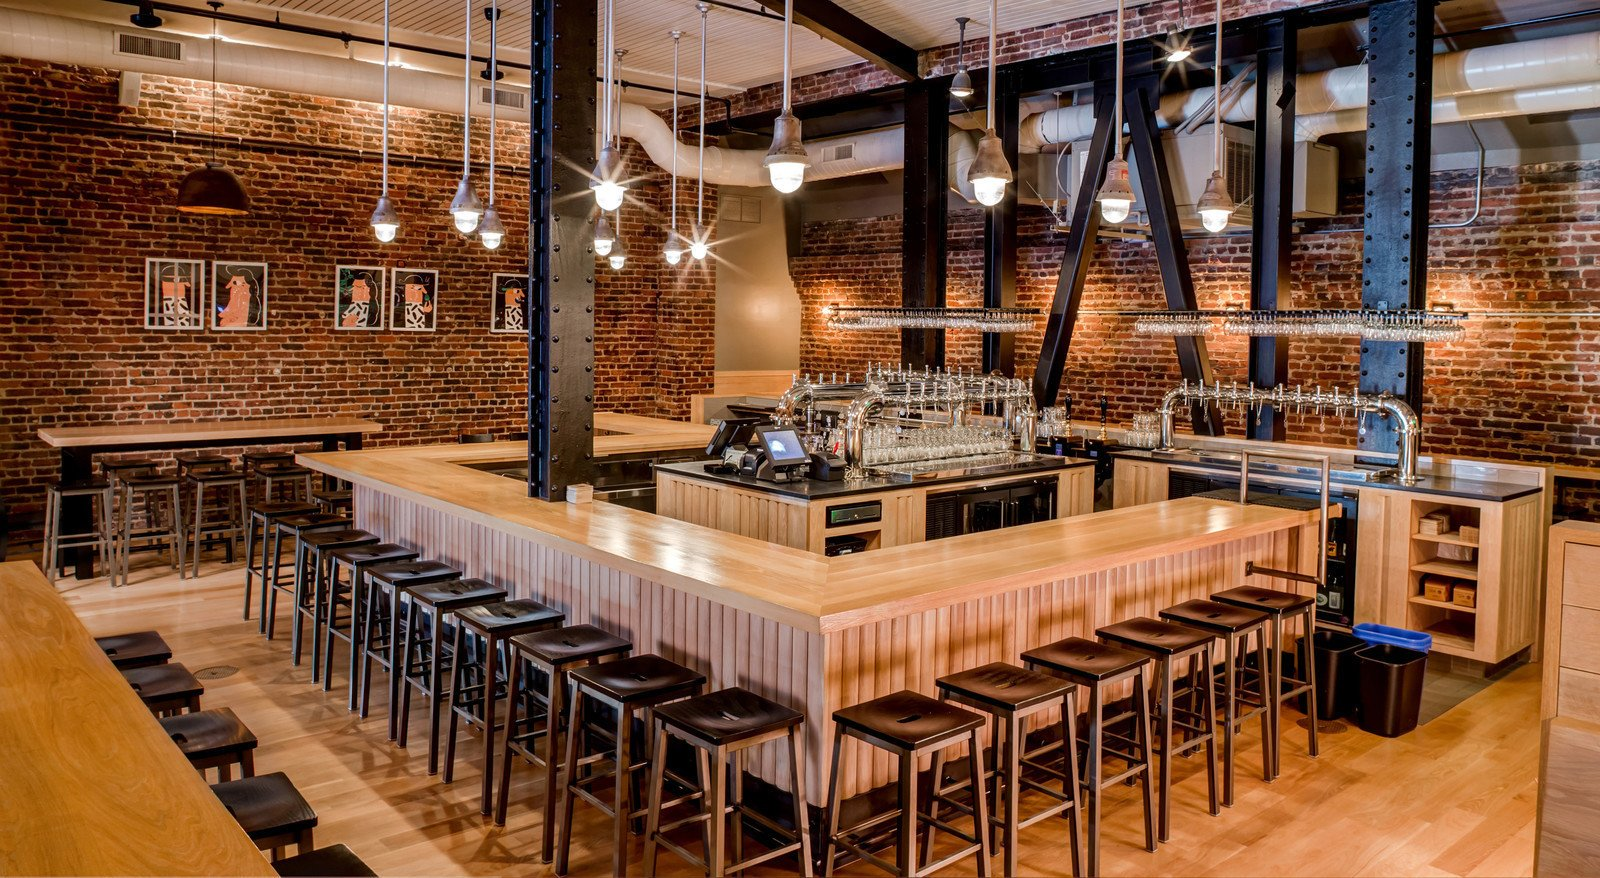 Located in the Tenderloin neighborhood of San Francisco, CA, Mikkeller takes an open-plan approach to their space. By using lighter wood tones, the room feels more bright and airy, perfect for accommodating a large number of people.  Photo 9 of 12 in 10 Brewpubs That Have Tapped the Art of Modern Design